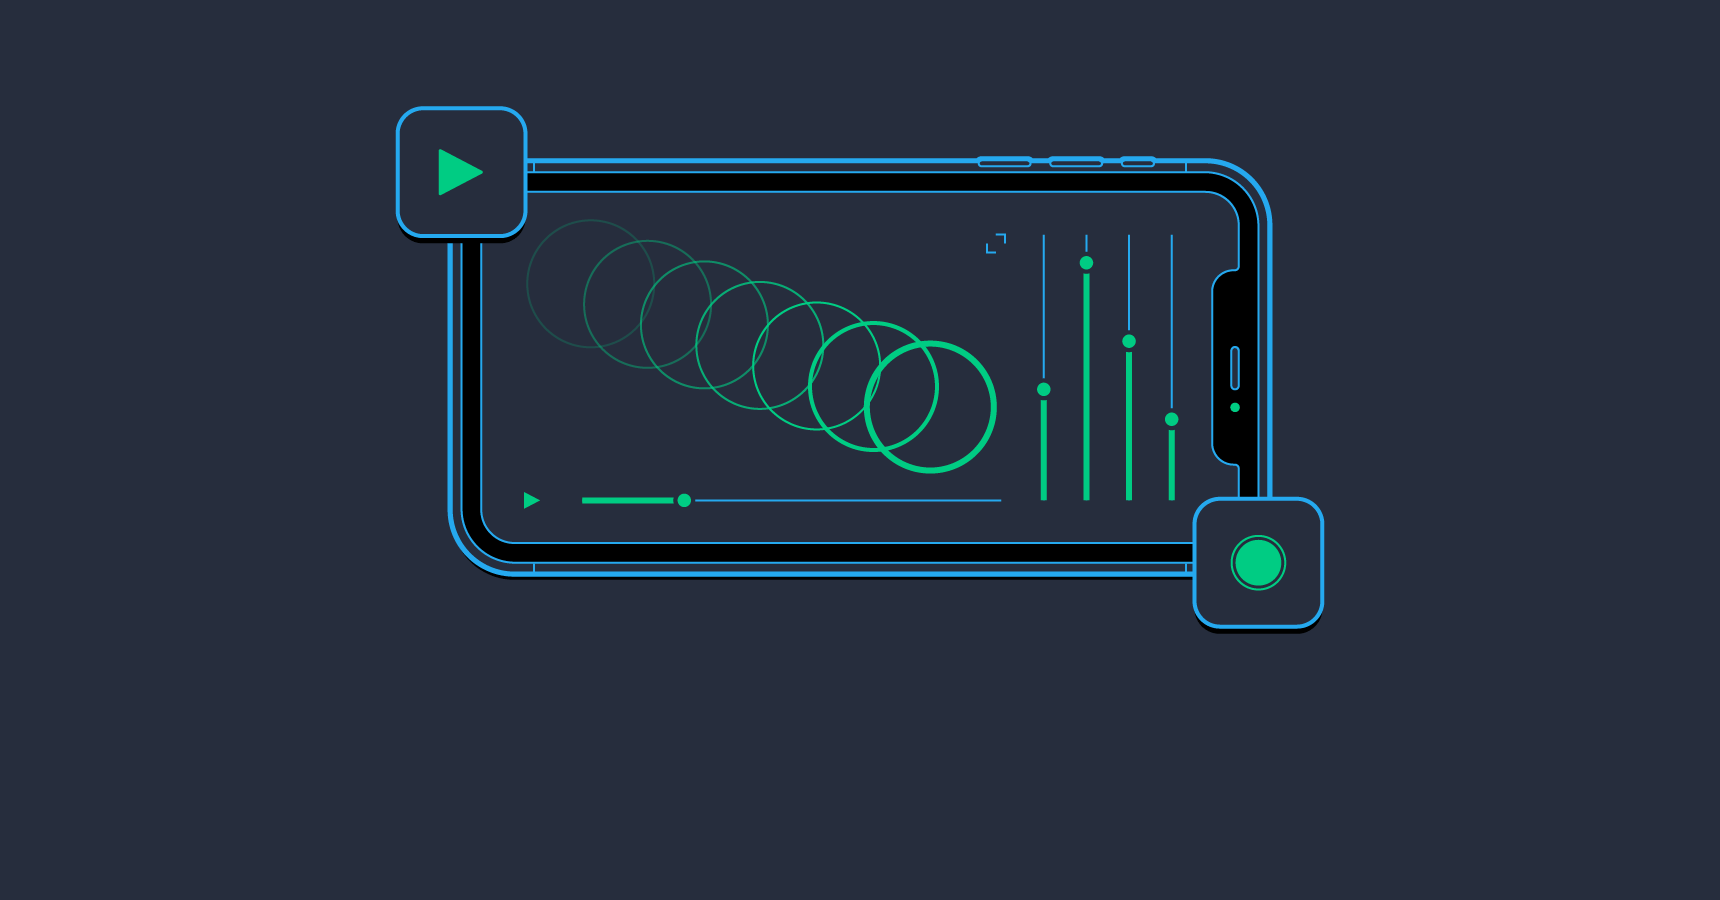 iOS Animation and Tuning for Efficiency